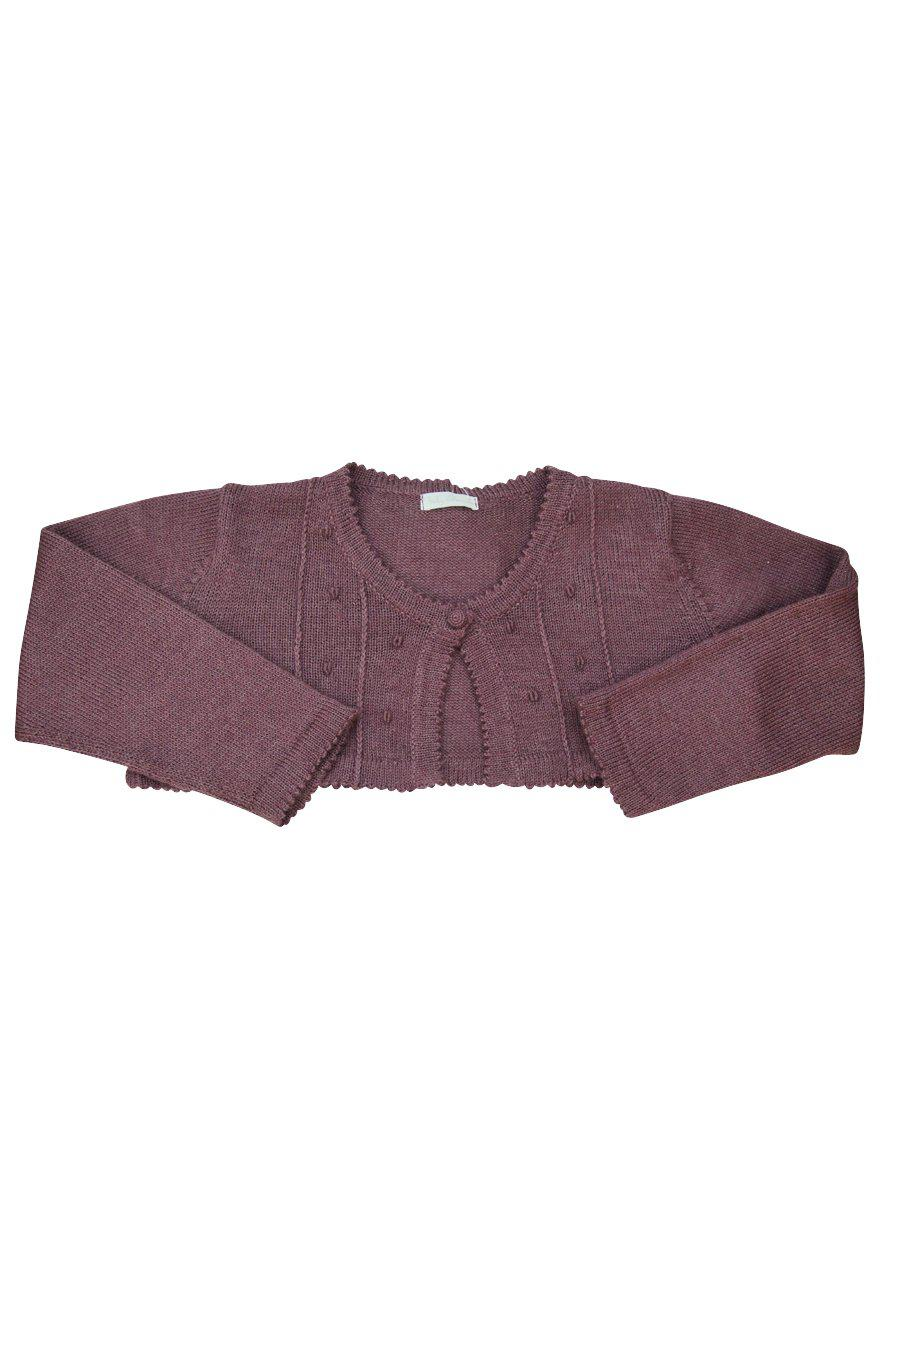 Mauve Baby Alpaca Bolero Sweater - Little Threads Inc. Children's Clothing